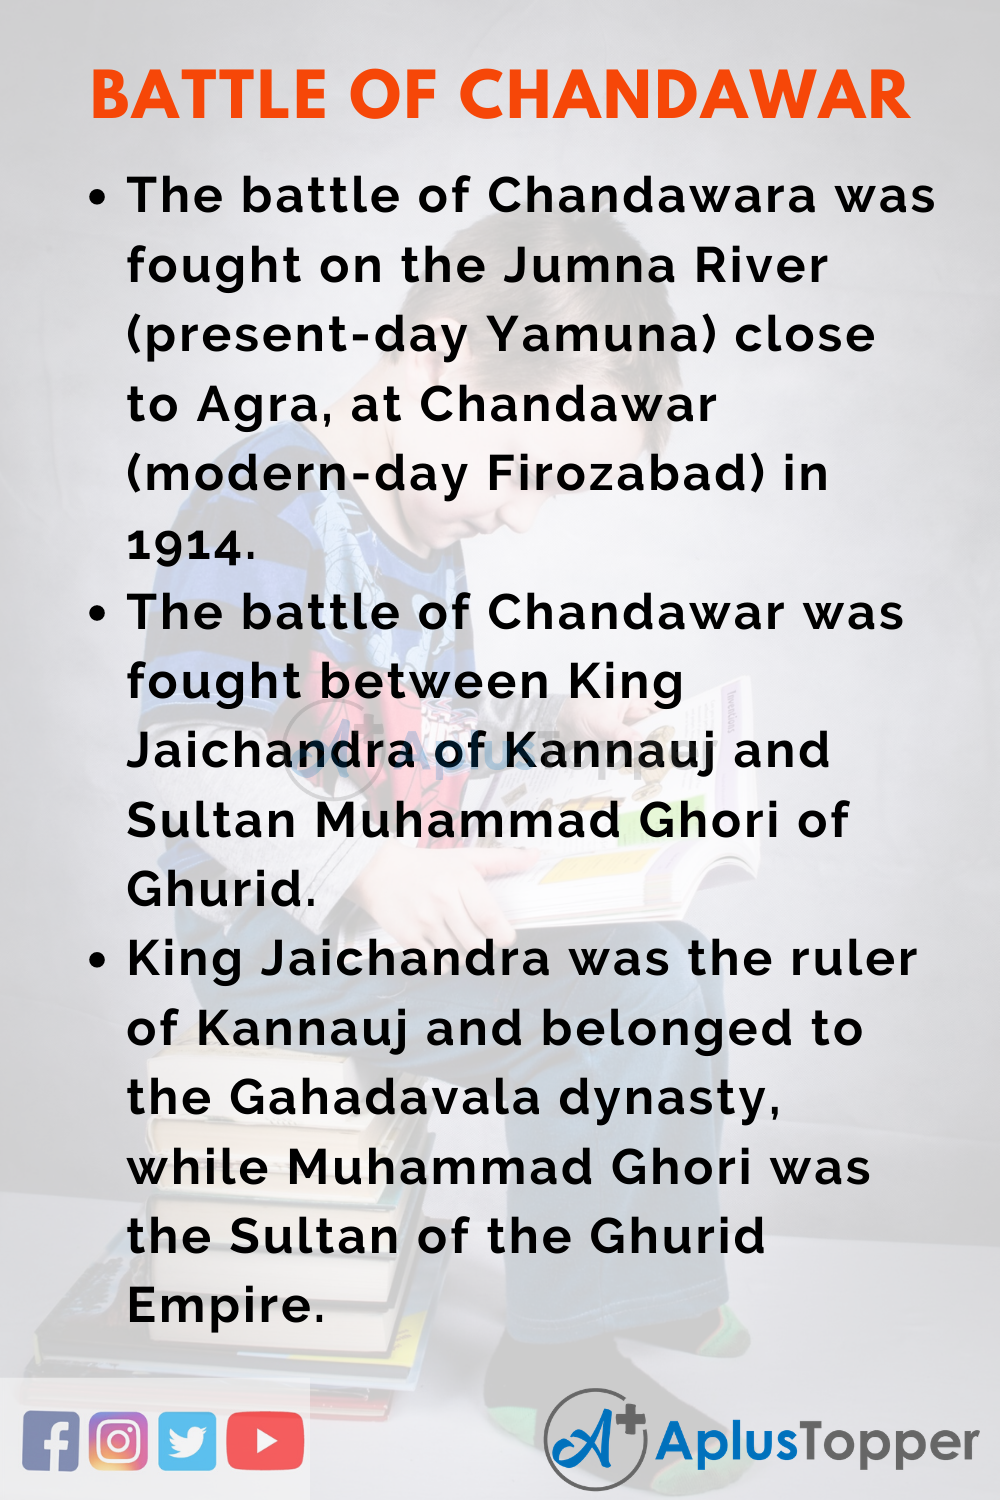 10 Lines on Battle of Chandawar for Higher Class Students